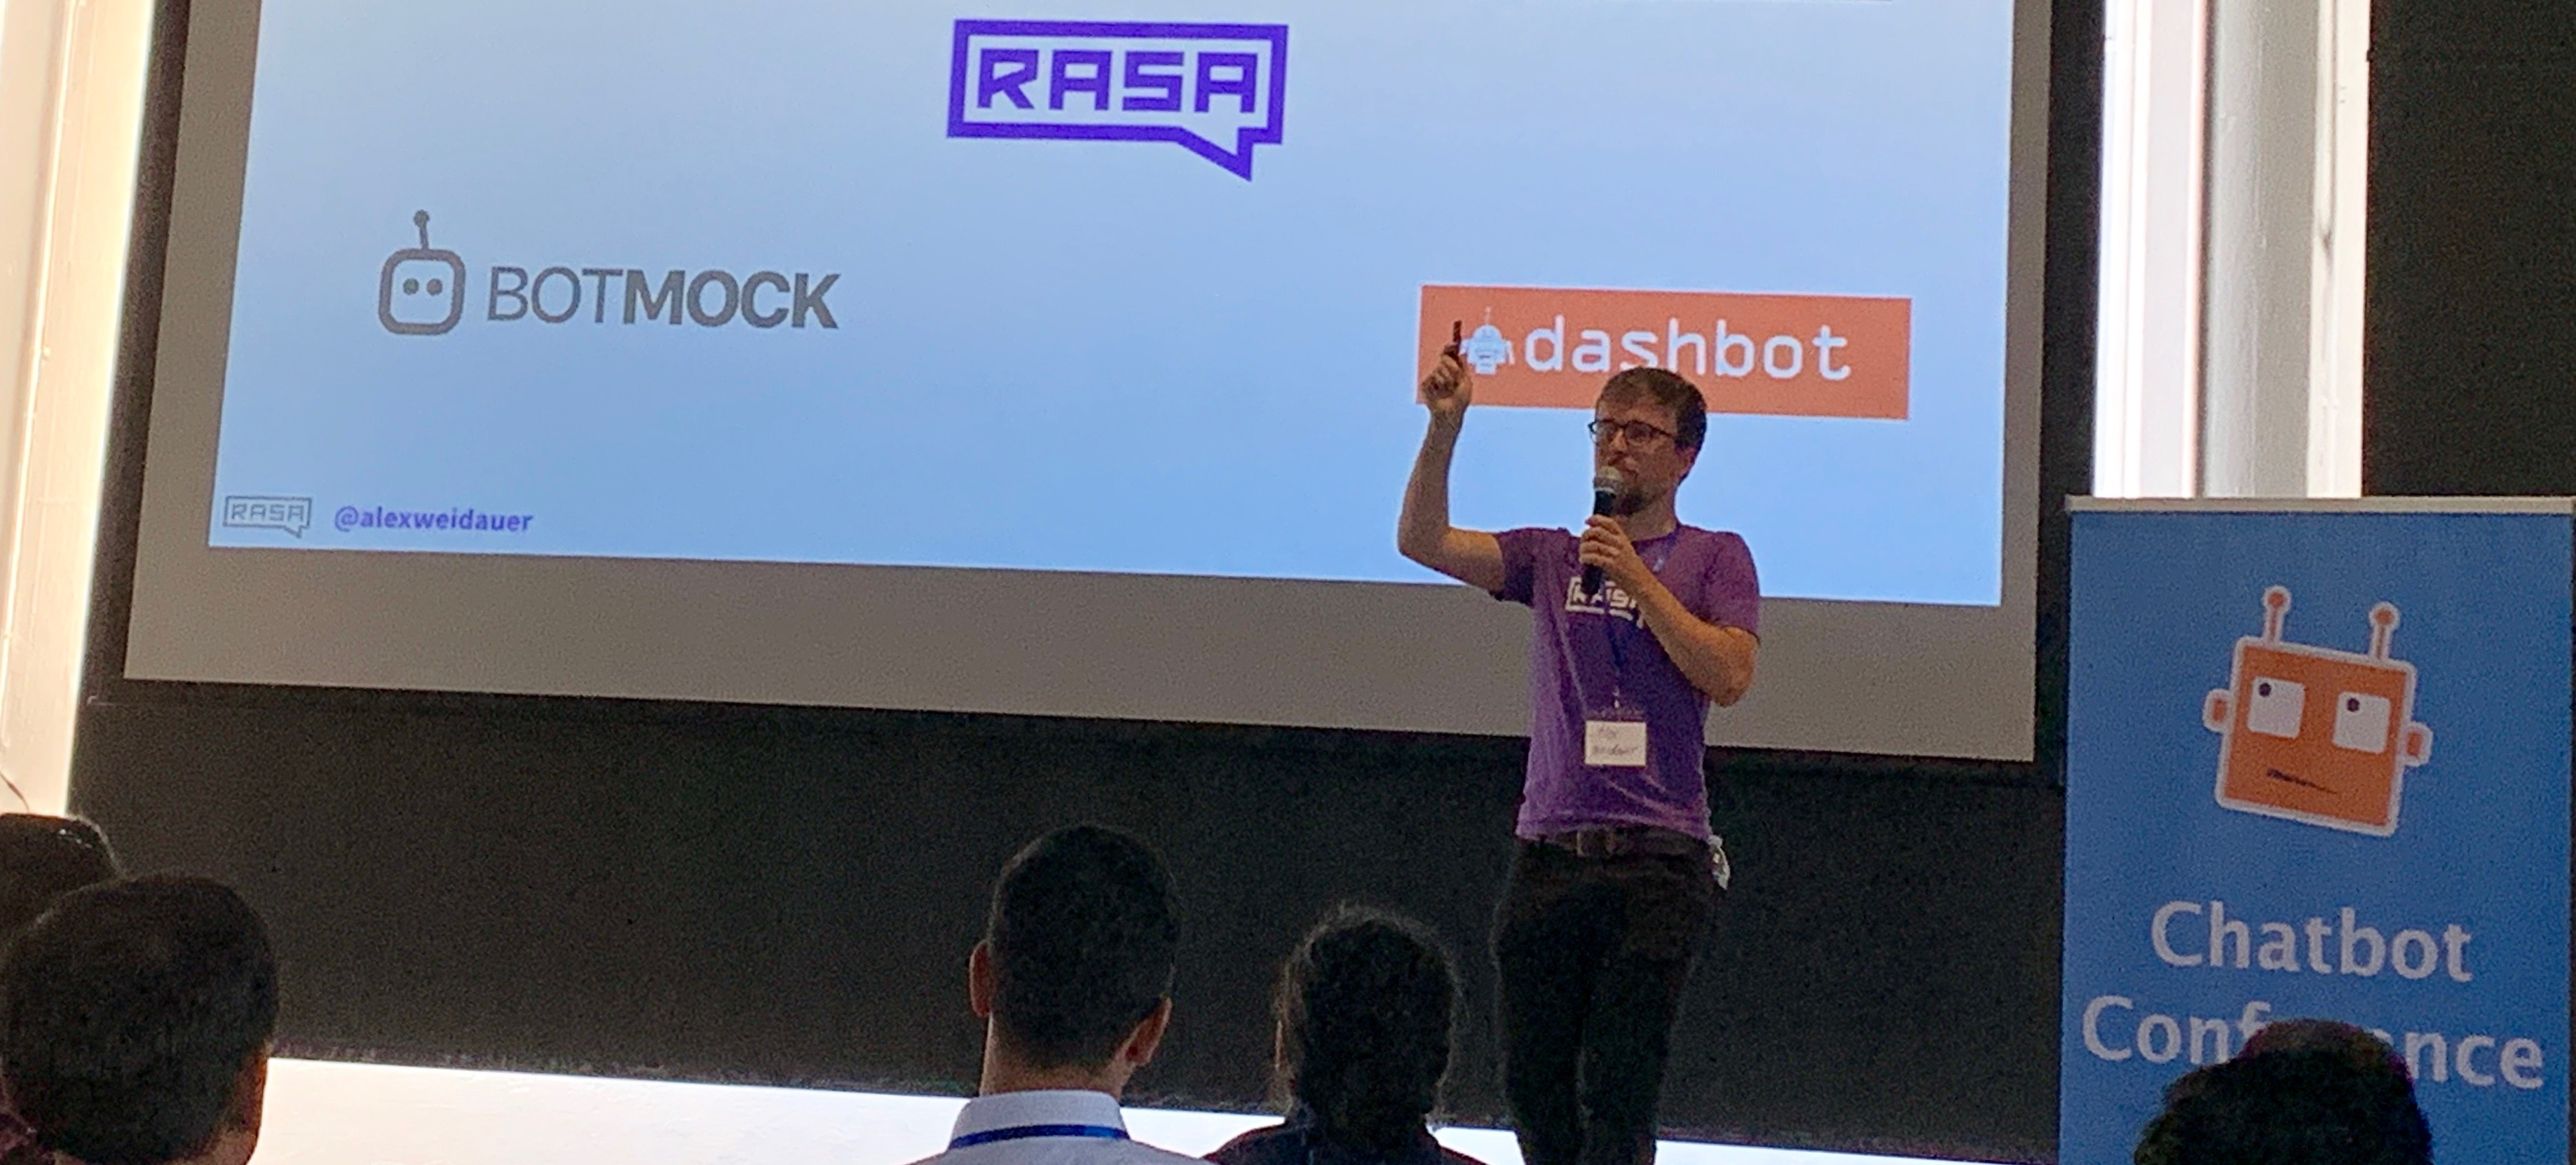 The future of chatbots at the Chatbot Conference